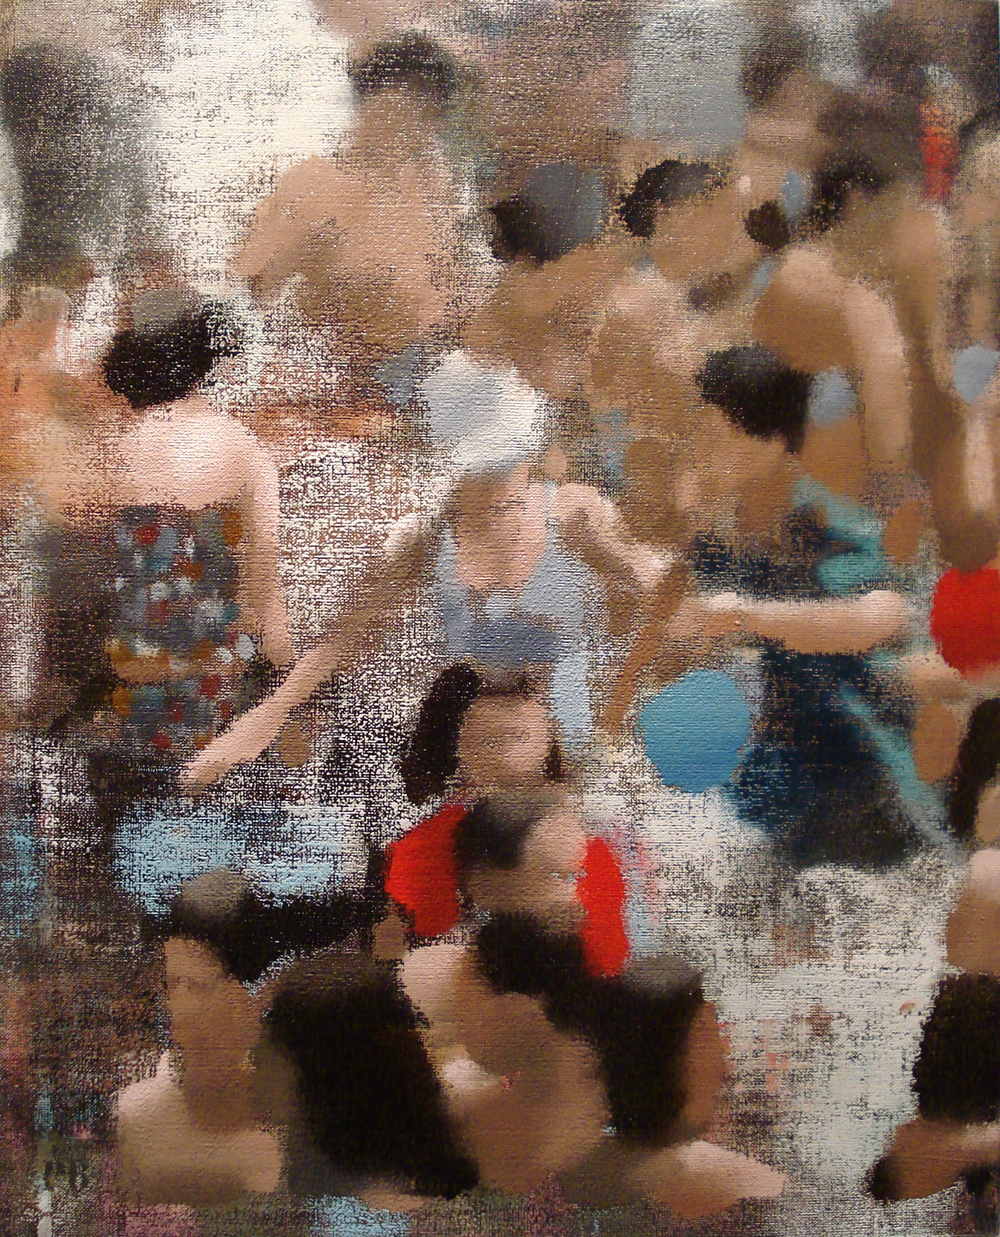 "Group, Oil on Linen on Panel, 2012, 30"" x 24"""